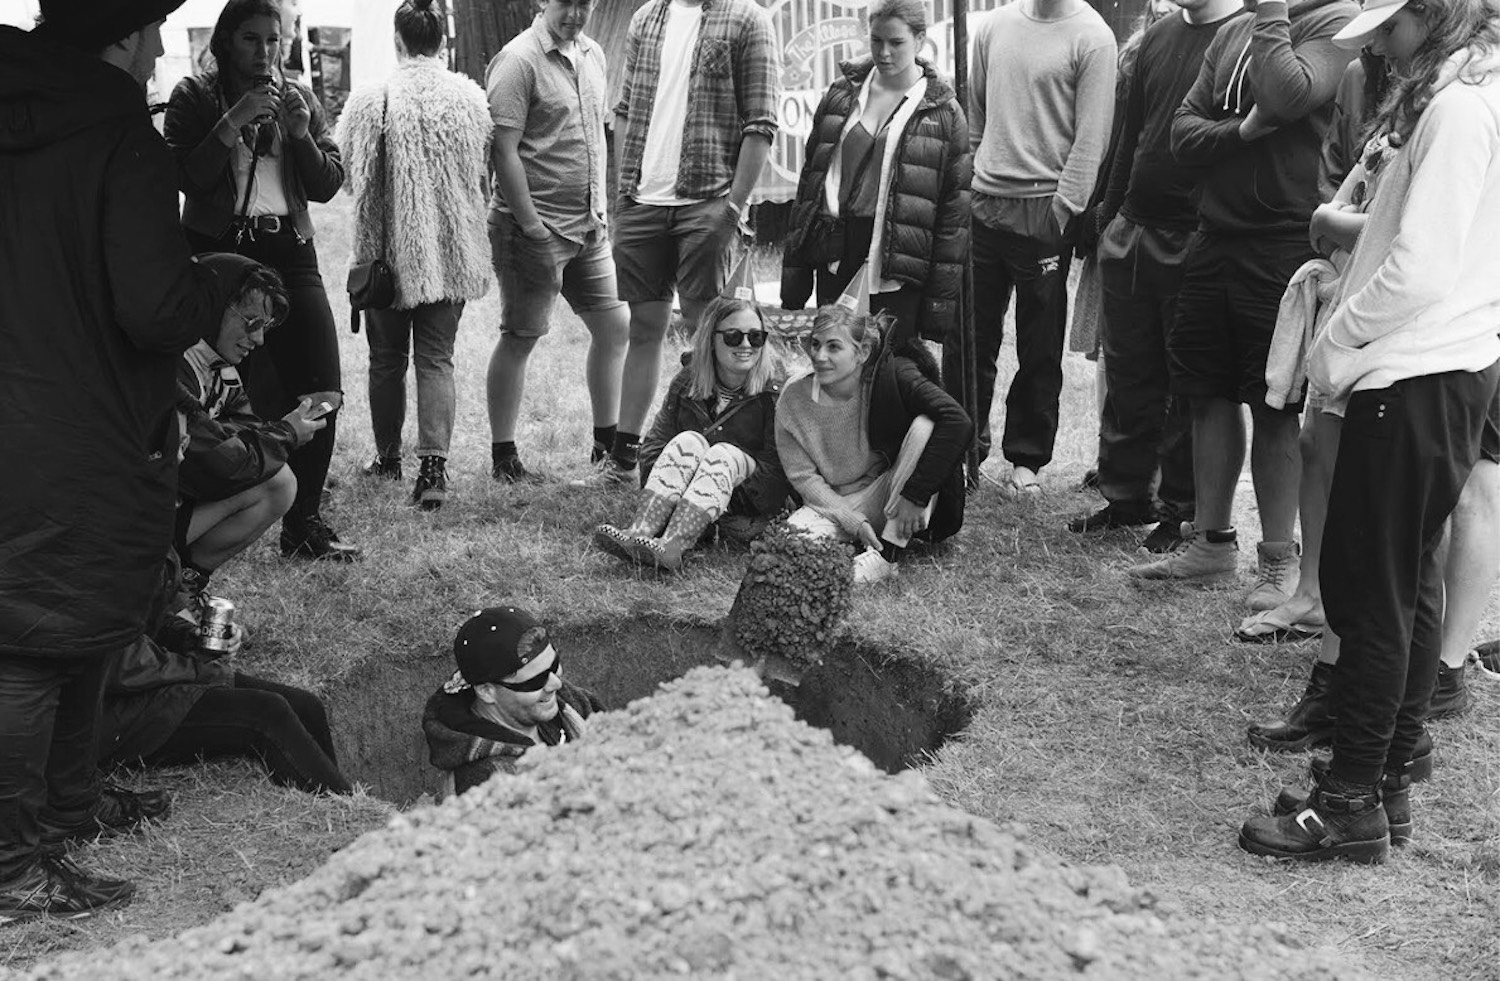 The Hole, at Falls Festival - image by Lisa Hirmer